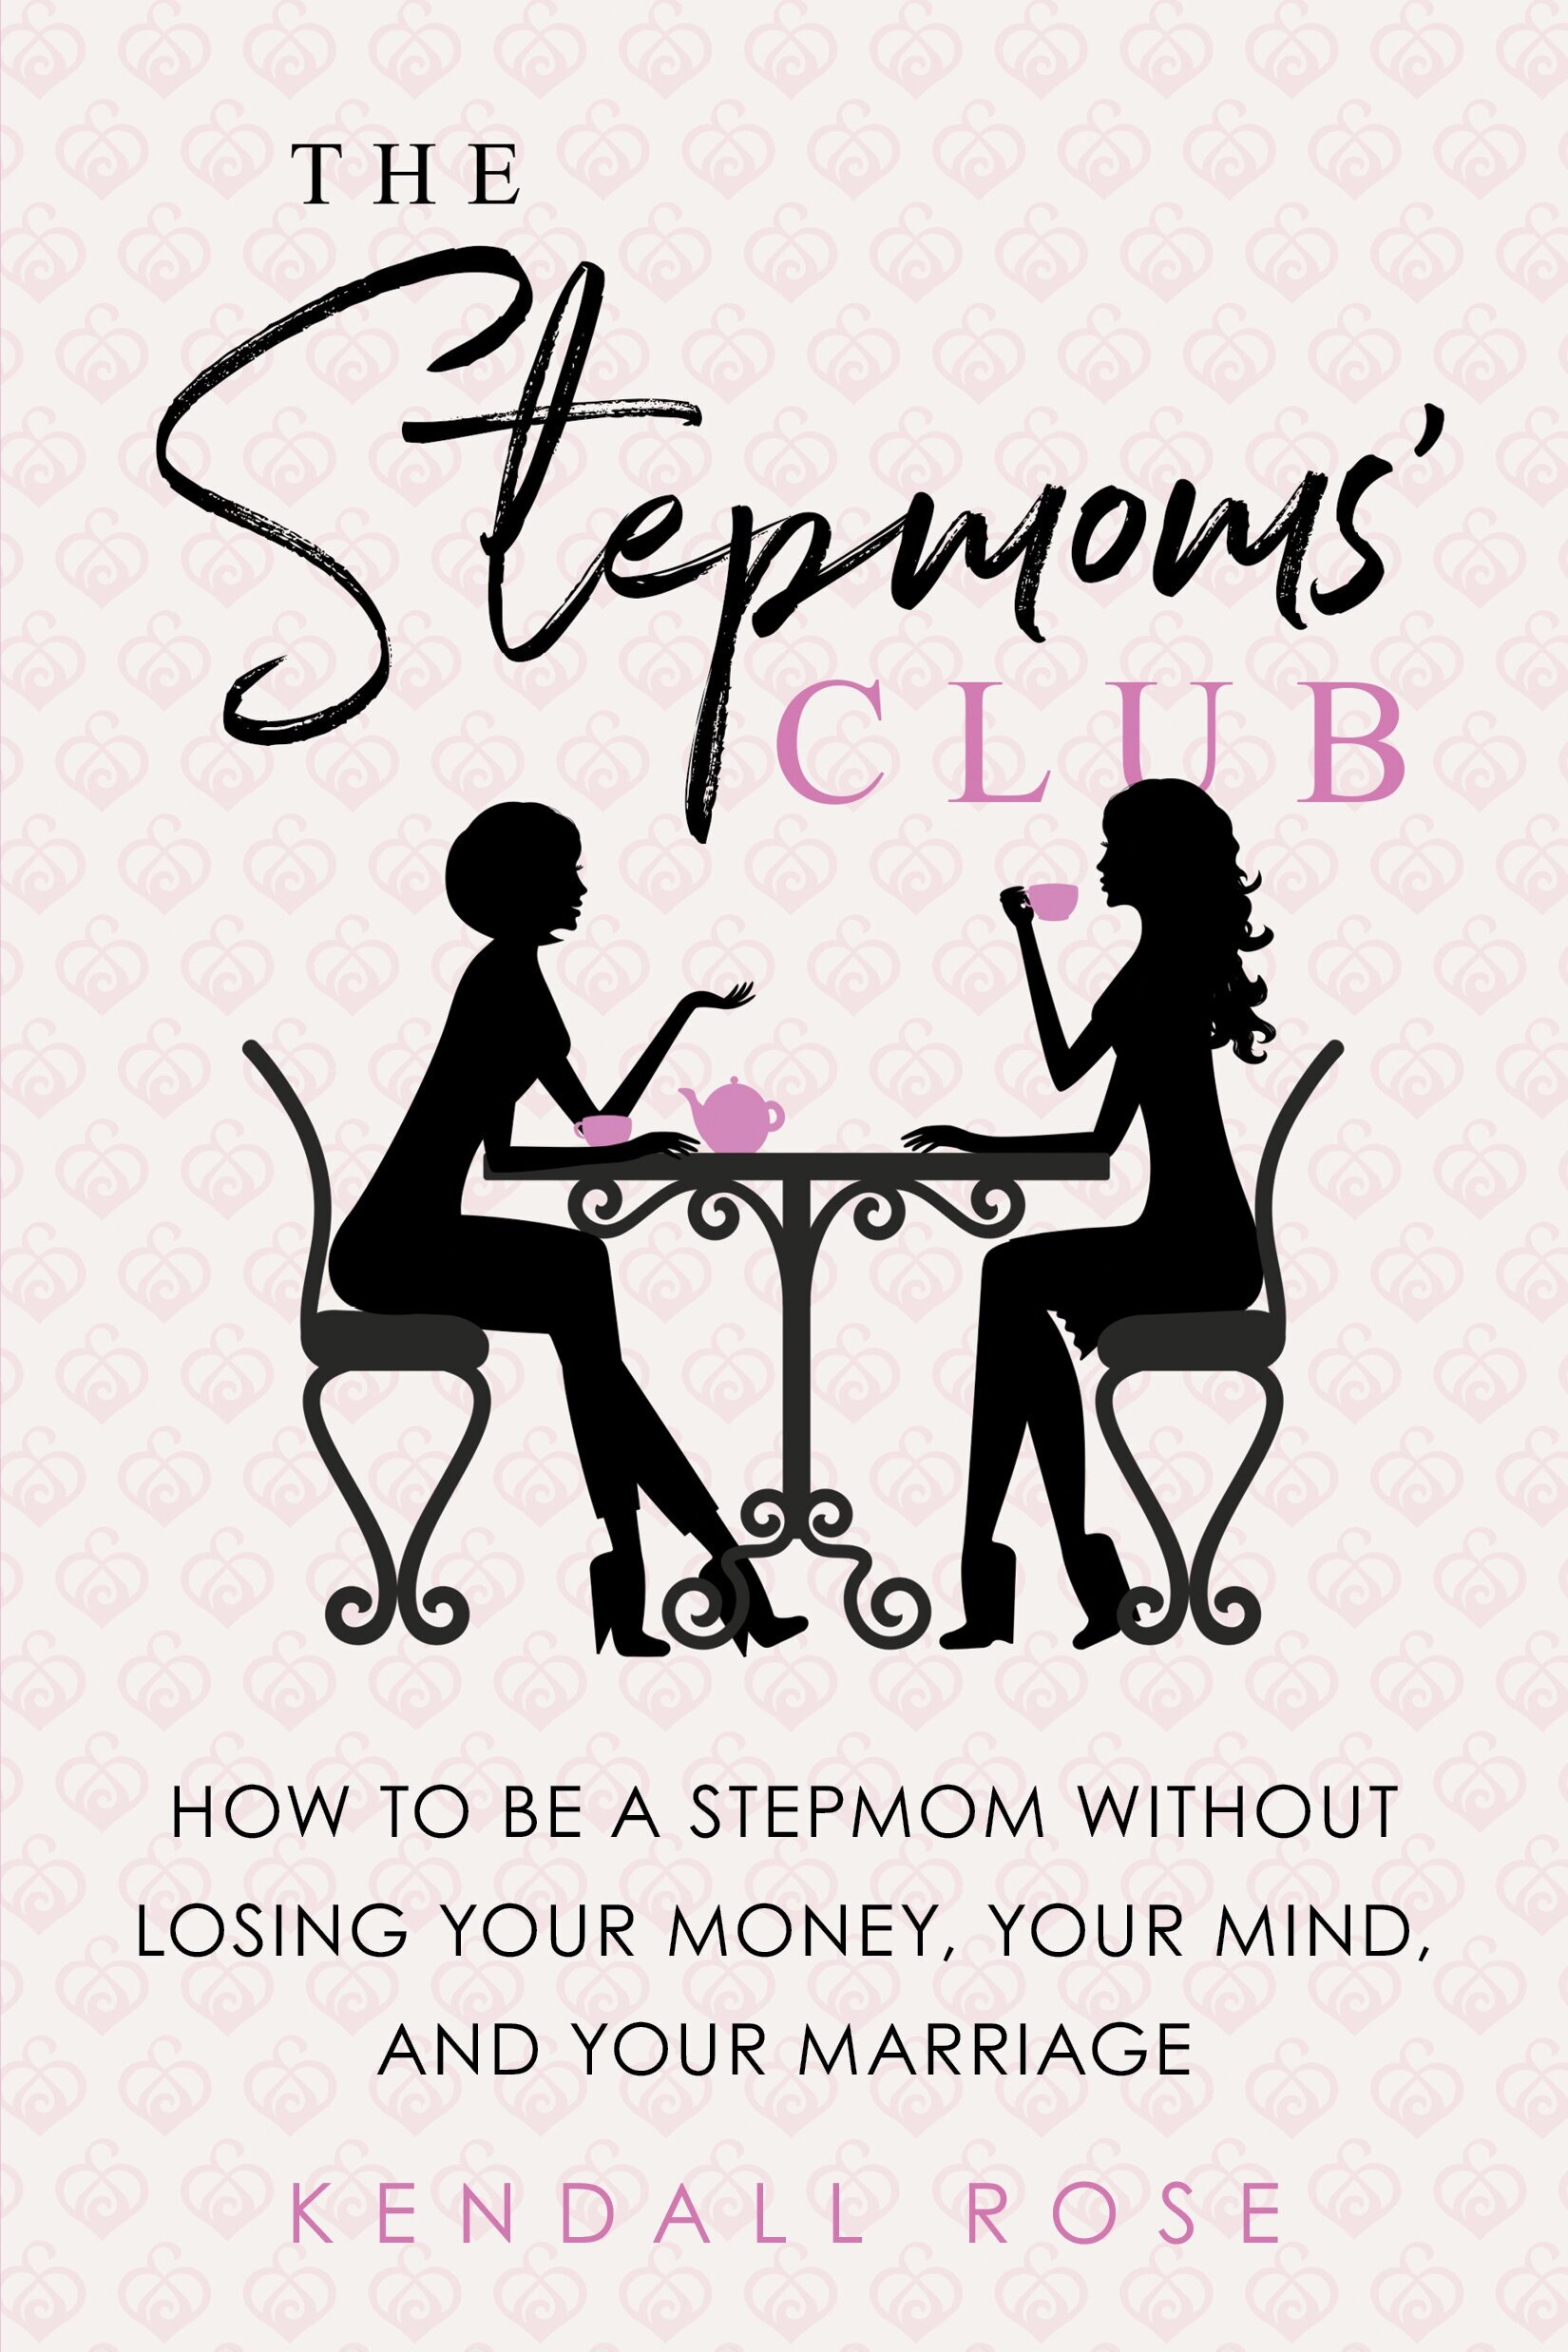 The+Stepmoms+Club+by+Kendall+Rose+Featured+on+The+Jamie+Scrimgeour+Podcast